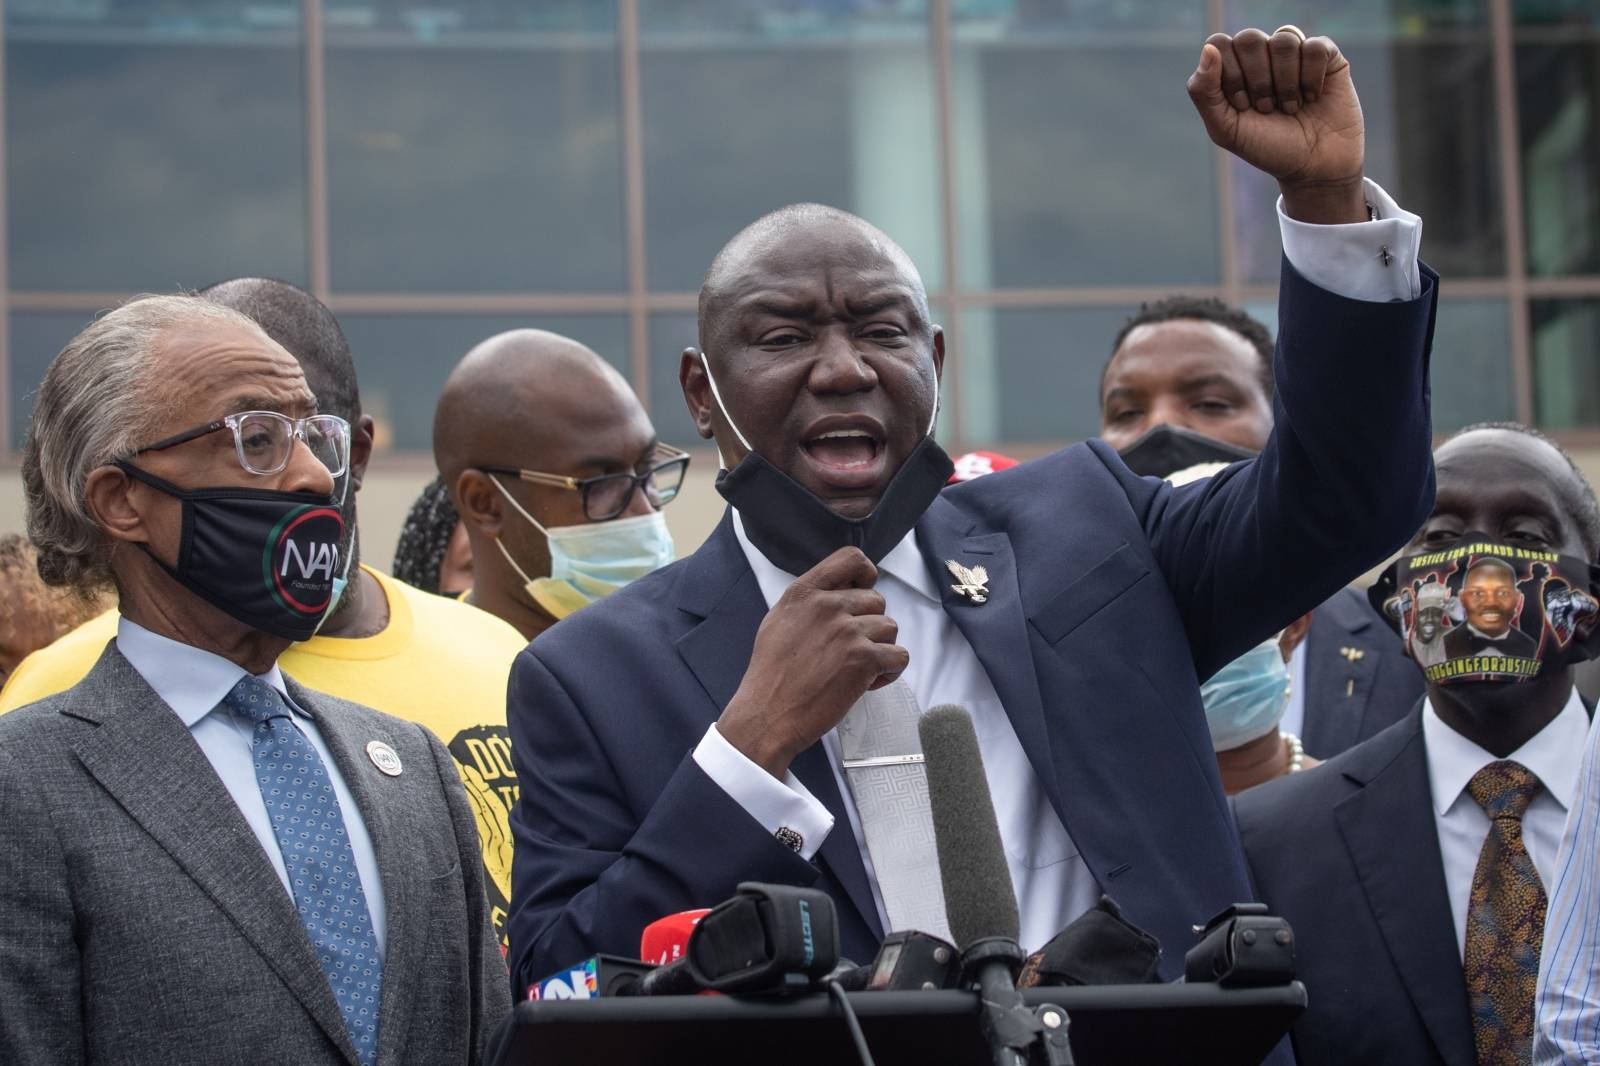 Attorney Ben Crump raises his arm while addressing media  during the public viewing for Floyd at The Fountain of Praise church in Houston